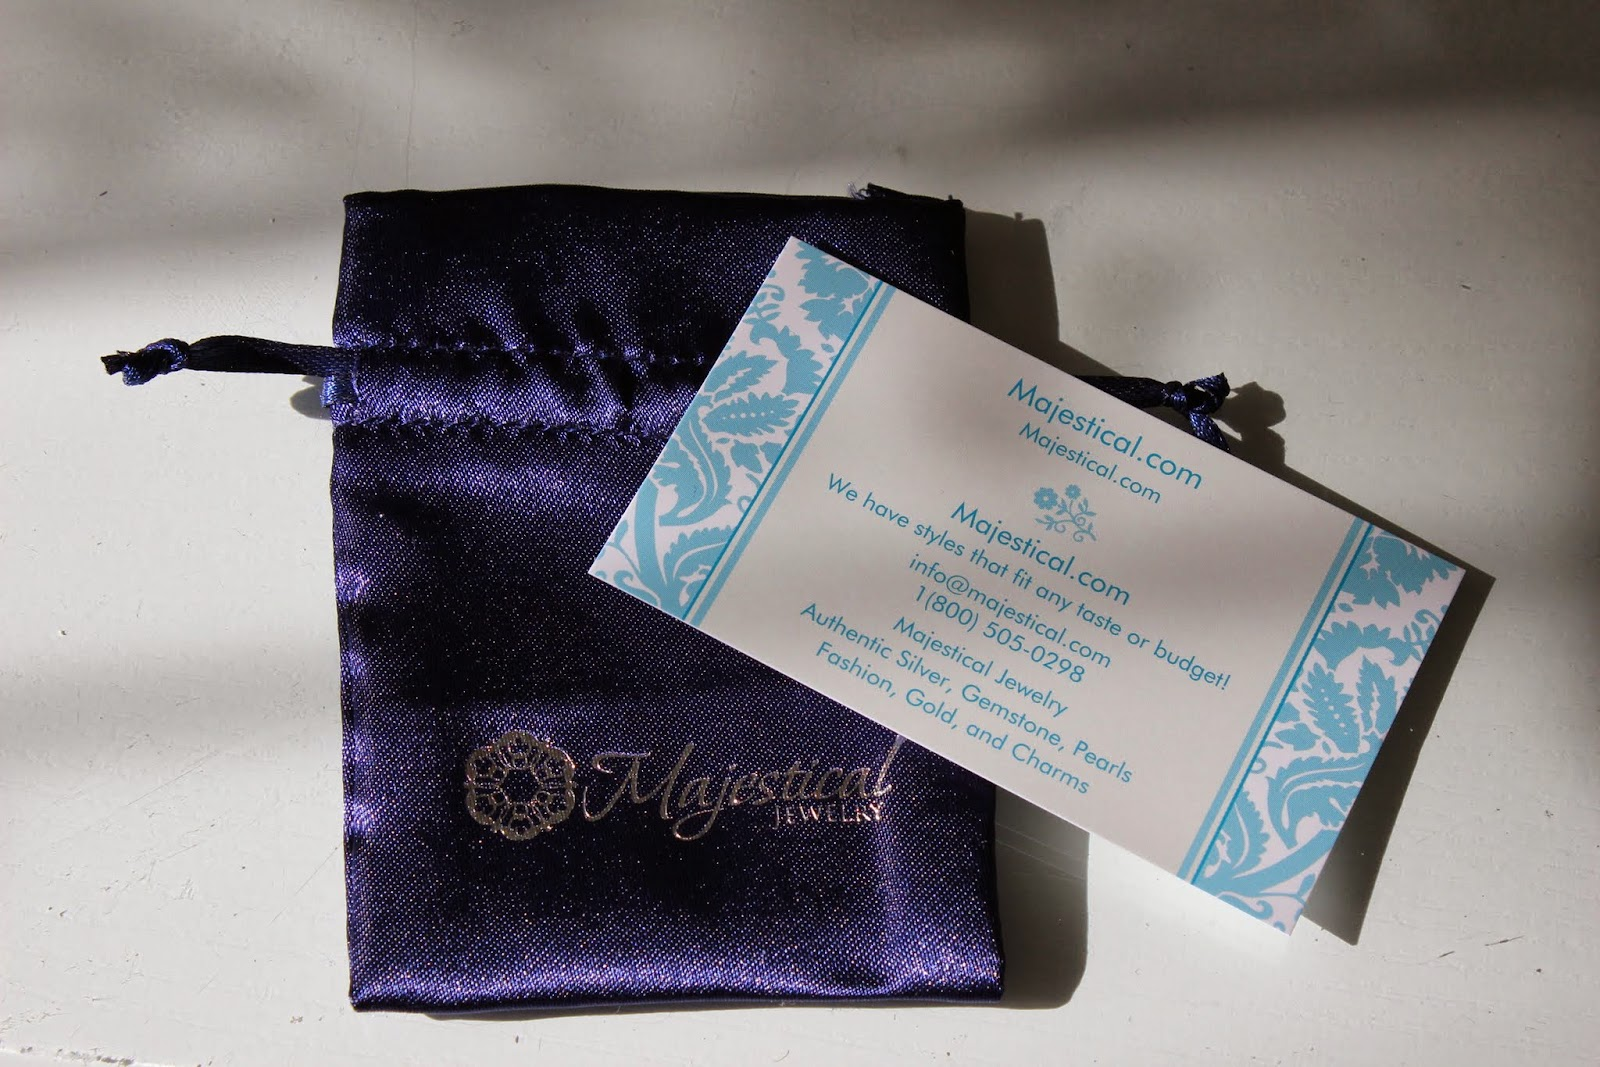 Majestical Is An Online Luxury Store Based In Charleston, South  Carolina With A Very Large Selection Of Charms, Bracelets, Earrings, And  Necklaces